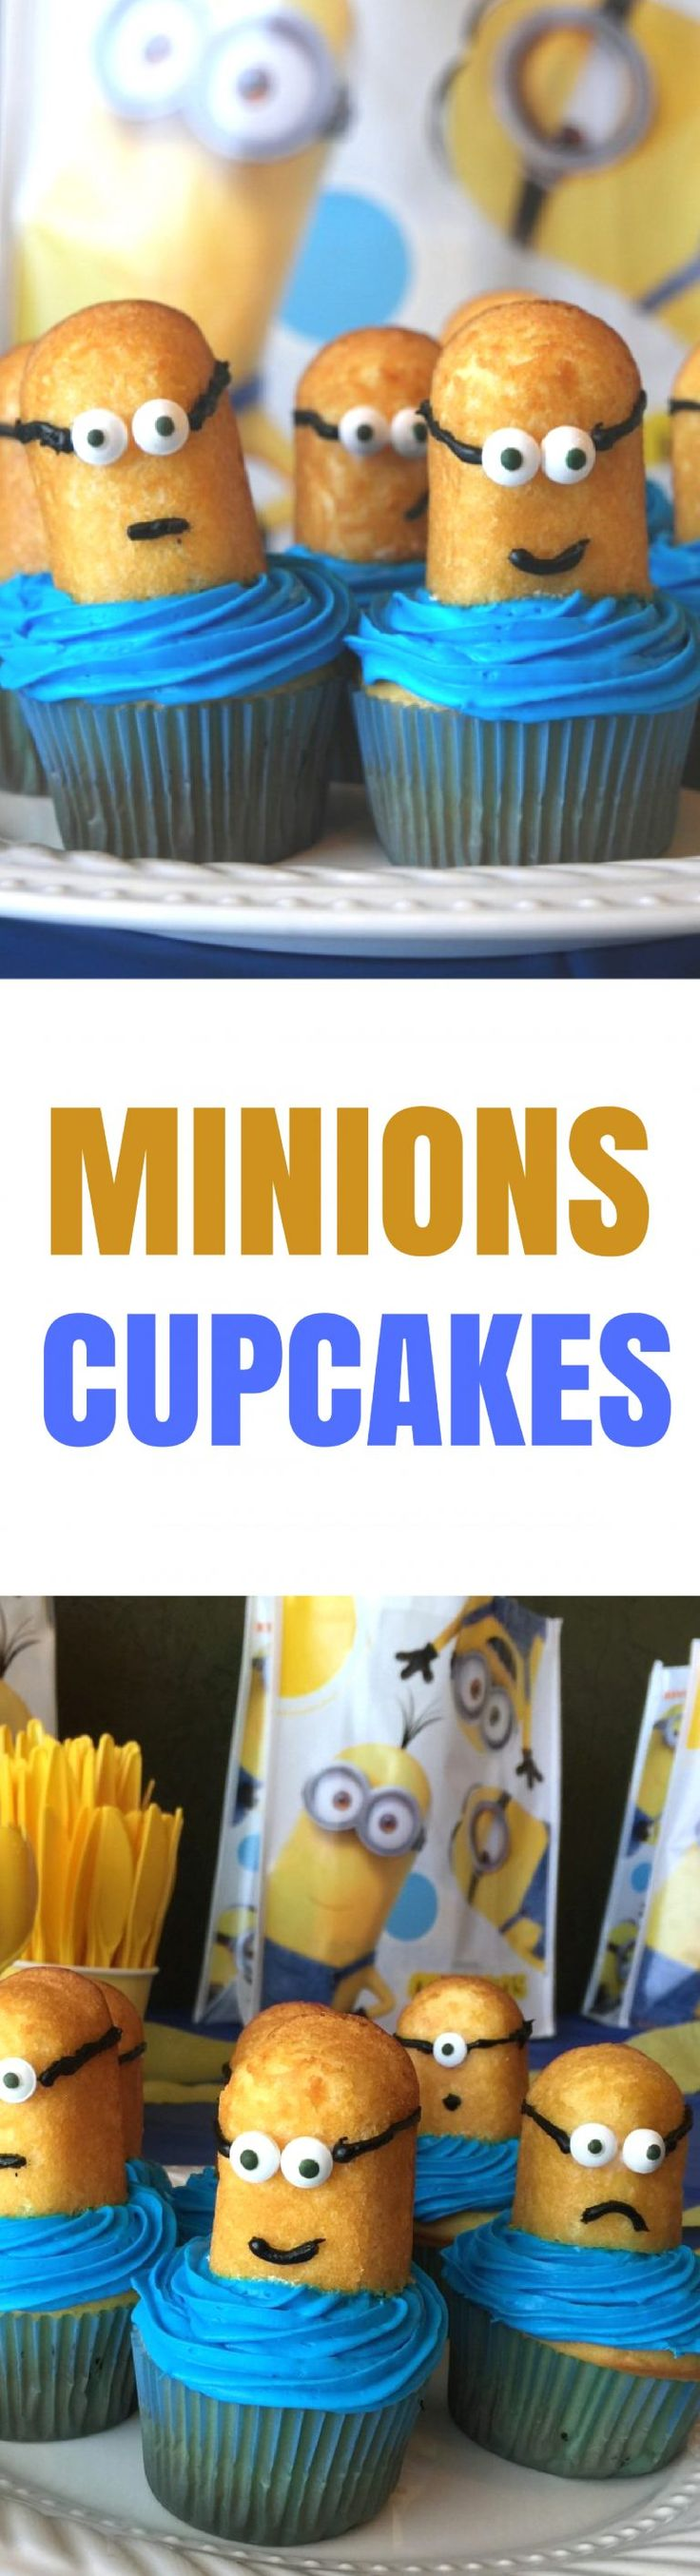 How to Make Despicable Me Minions Movie Party Cupcakes   Do your kids love the Minions as much as mine do? Actually, our whole family can't get enough of these silly little yellow dudes, and we're so excited to see Despicable Me on June 30th in theaters!